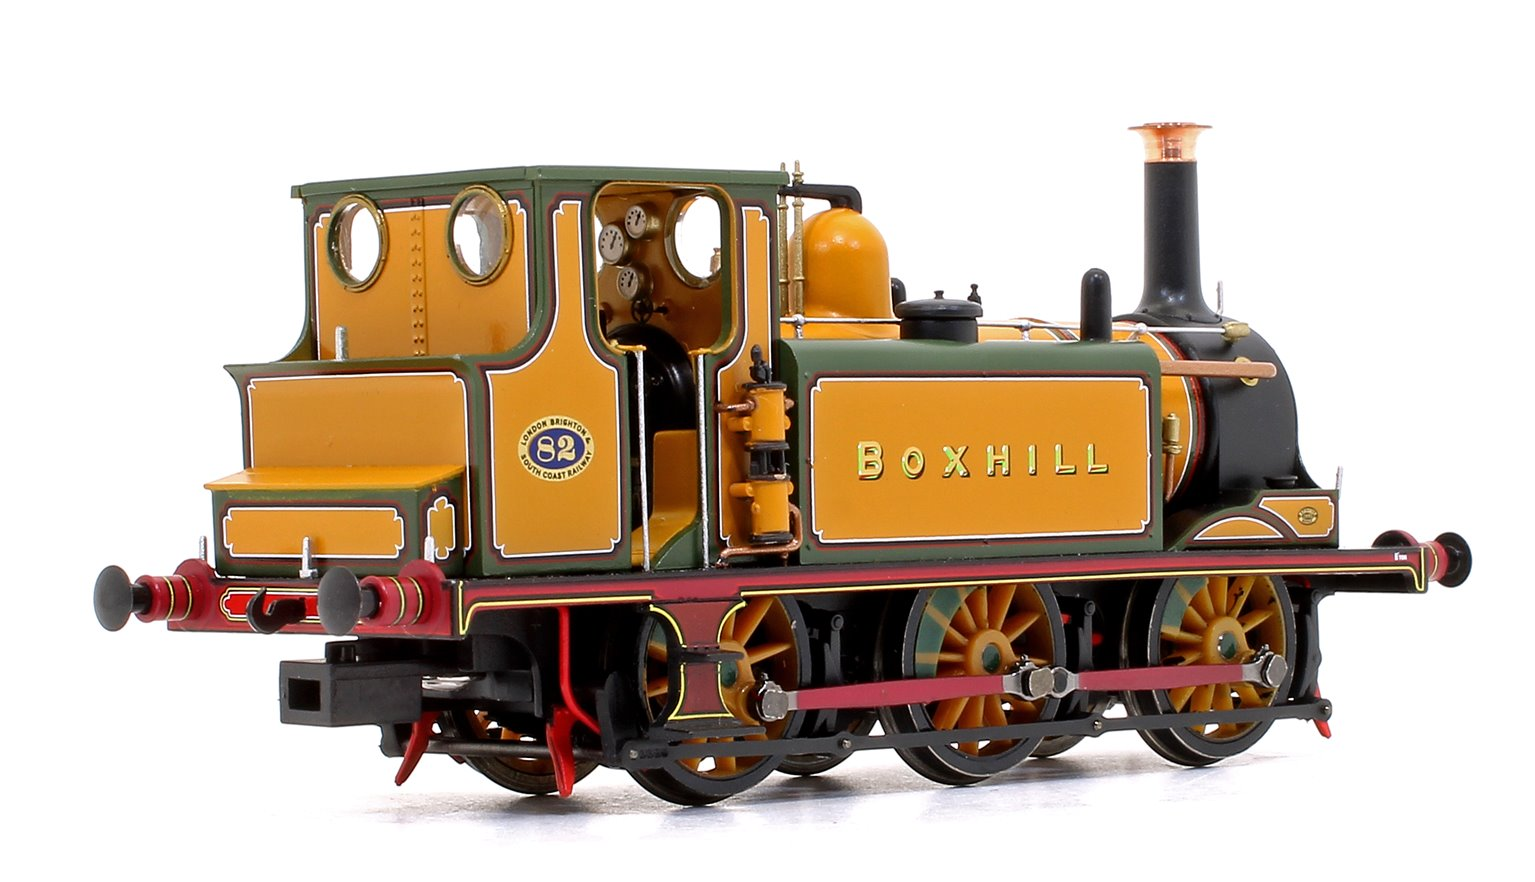 Stroudley Terrier A1 Class 'Boxhill' Improved Engine Green 0-6-0 Tank Locomotive No.82 DCC Ready